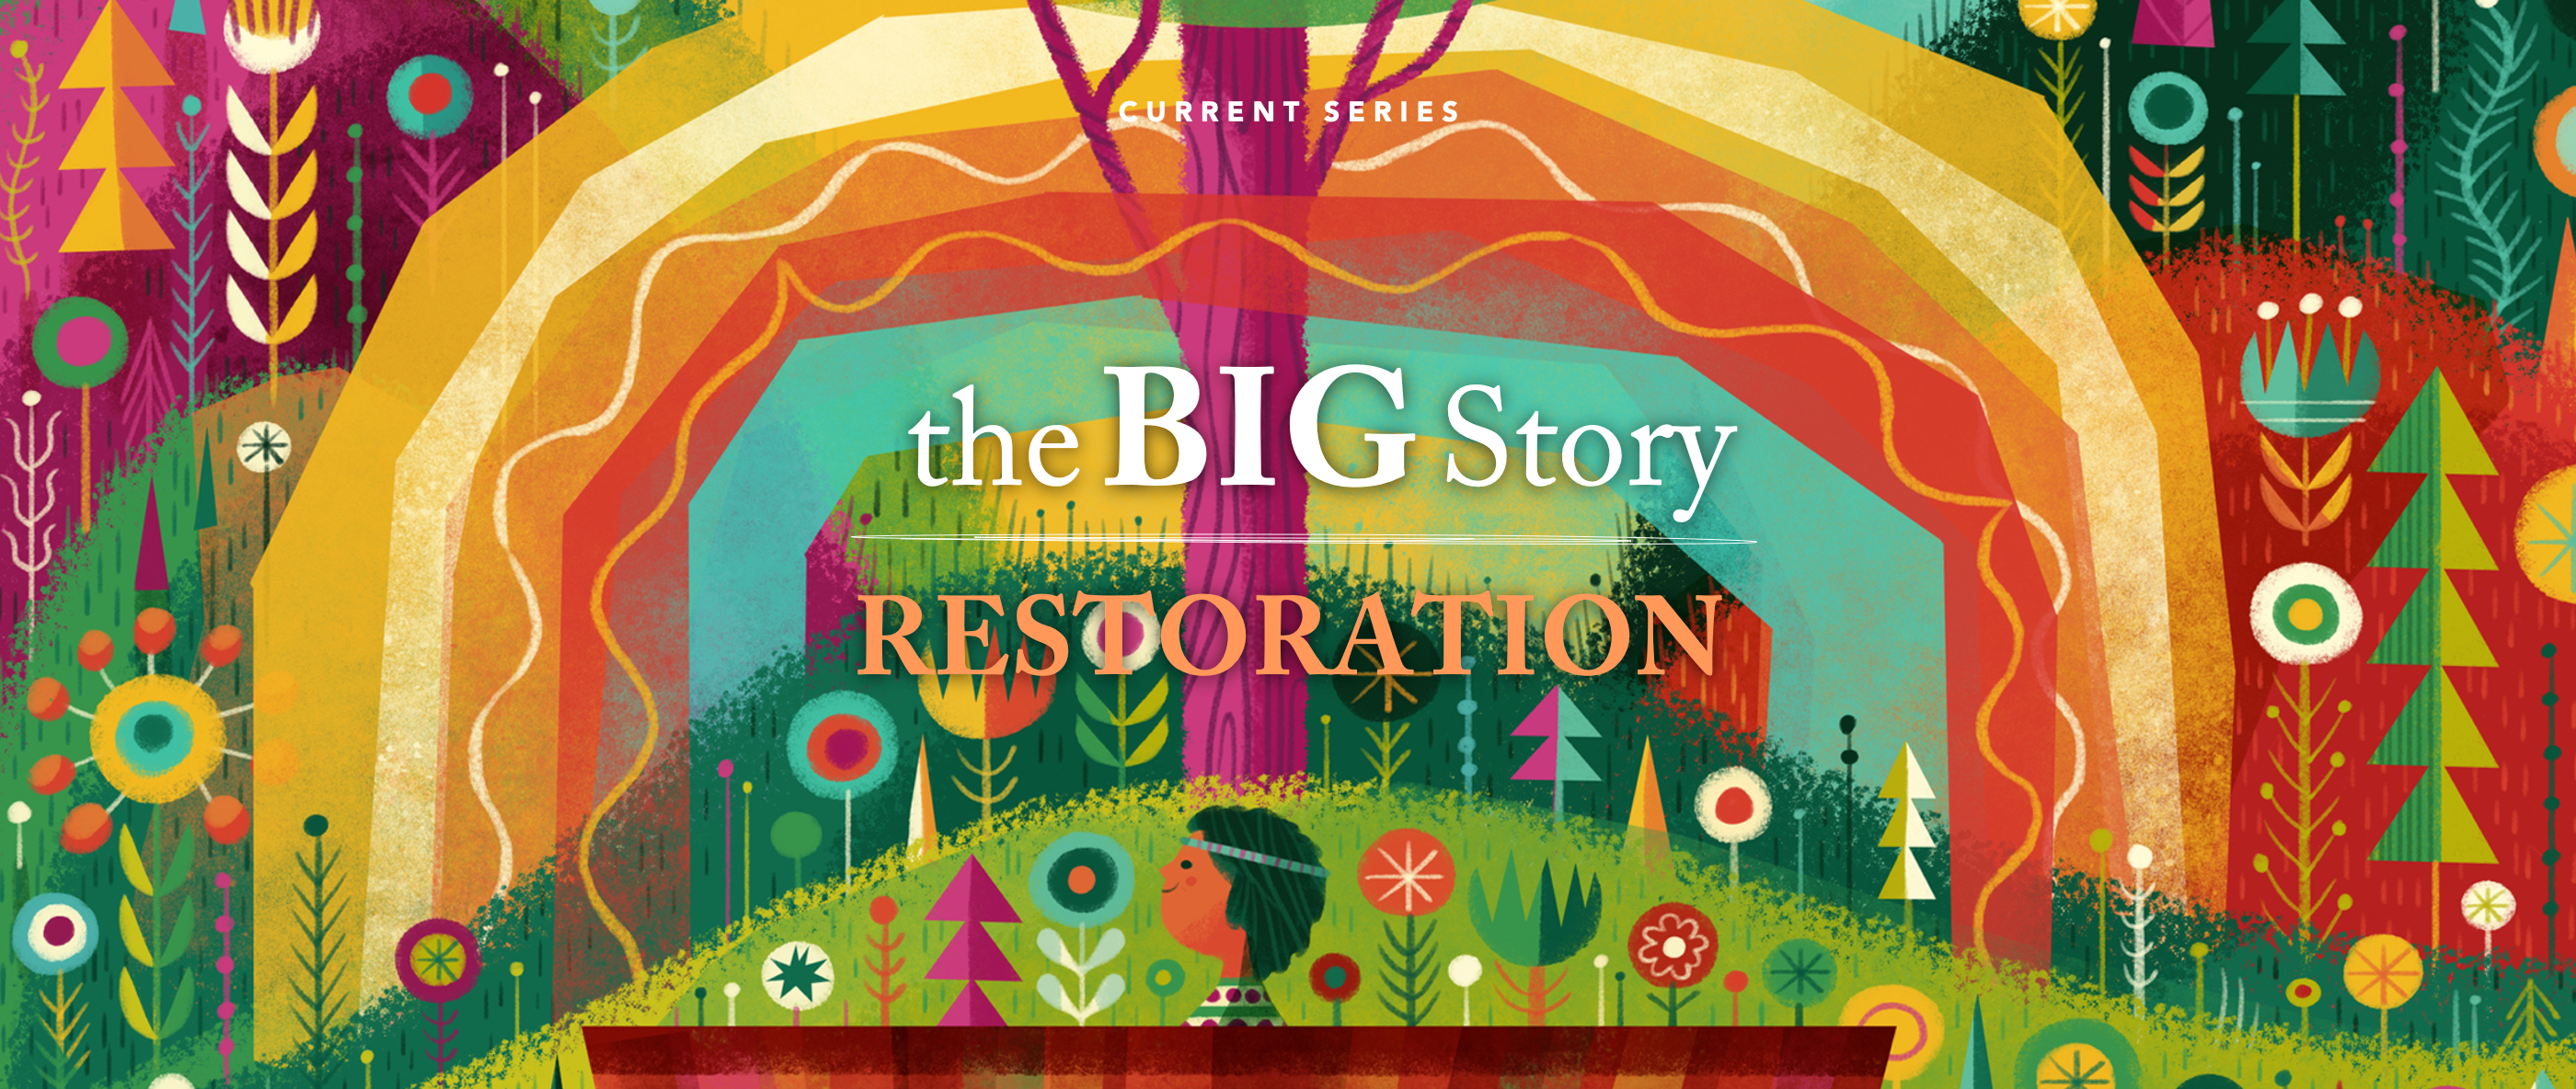 TheBigStory_RESTORATION_CurrentSeries